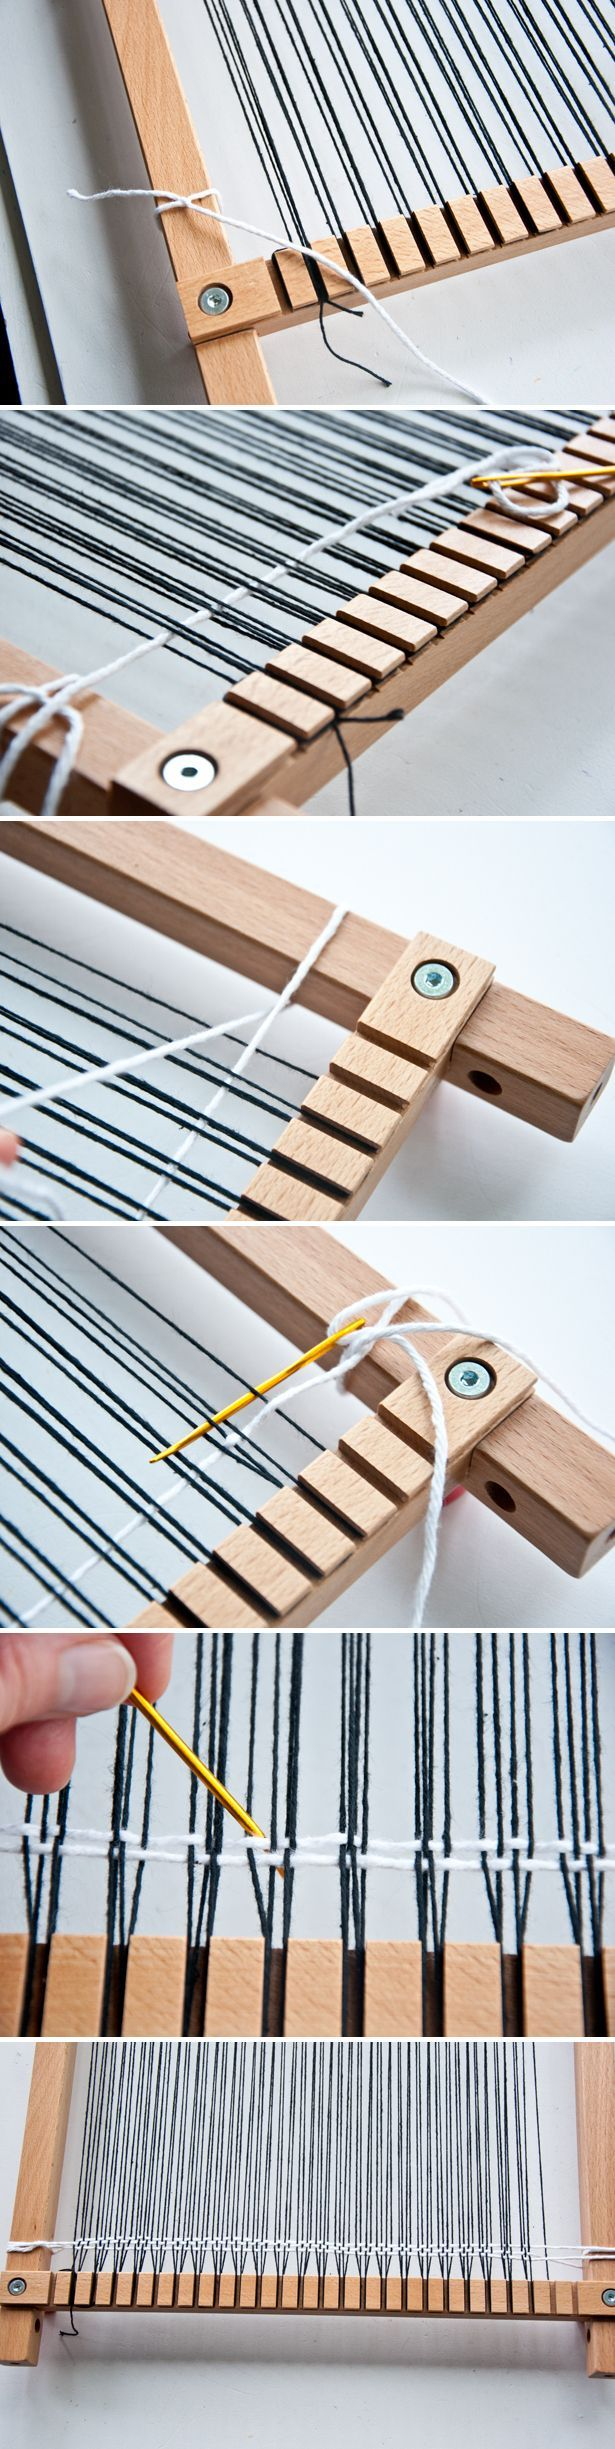 This entire blog is GREAT! So helpful for beginning weavers like me. How To Double Warp a Loom | The Weaving Loom: